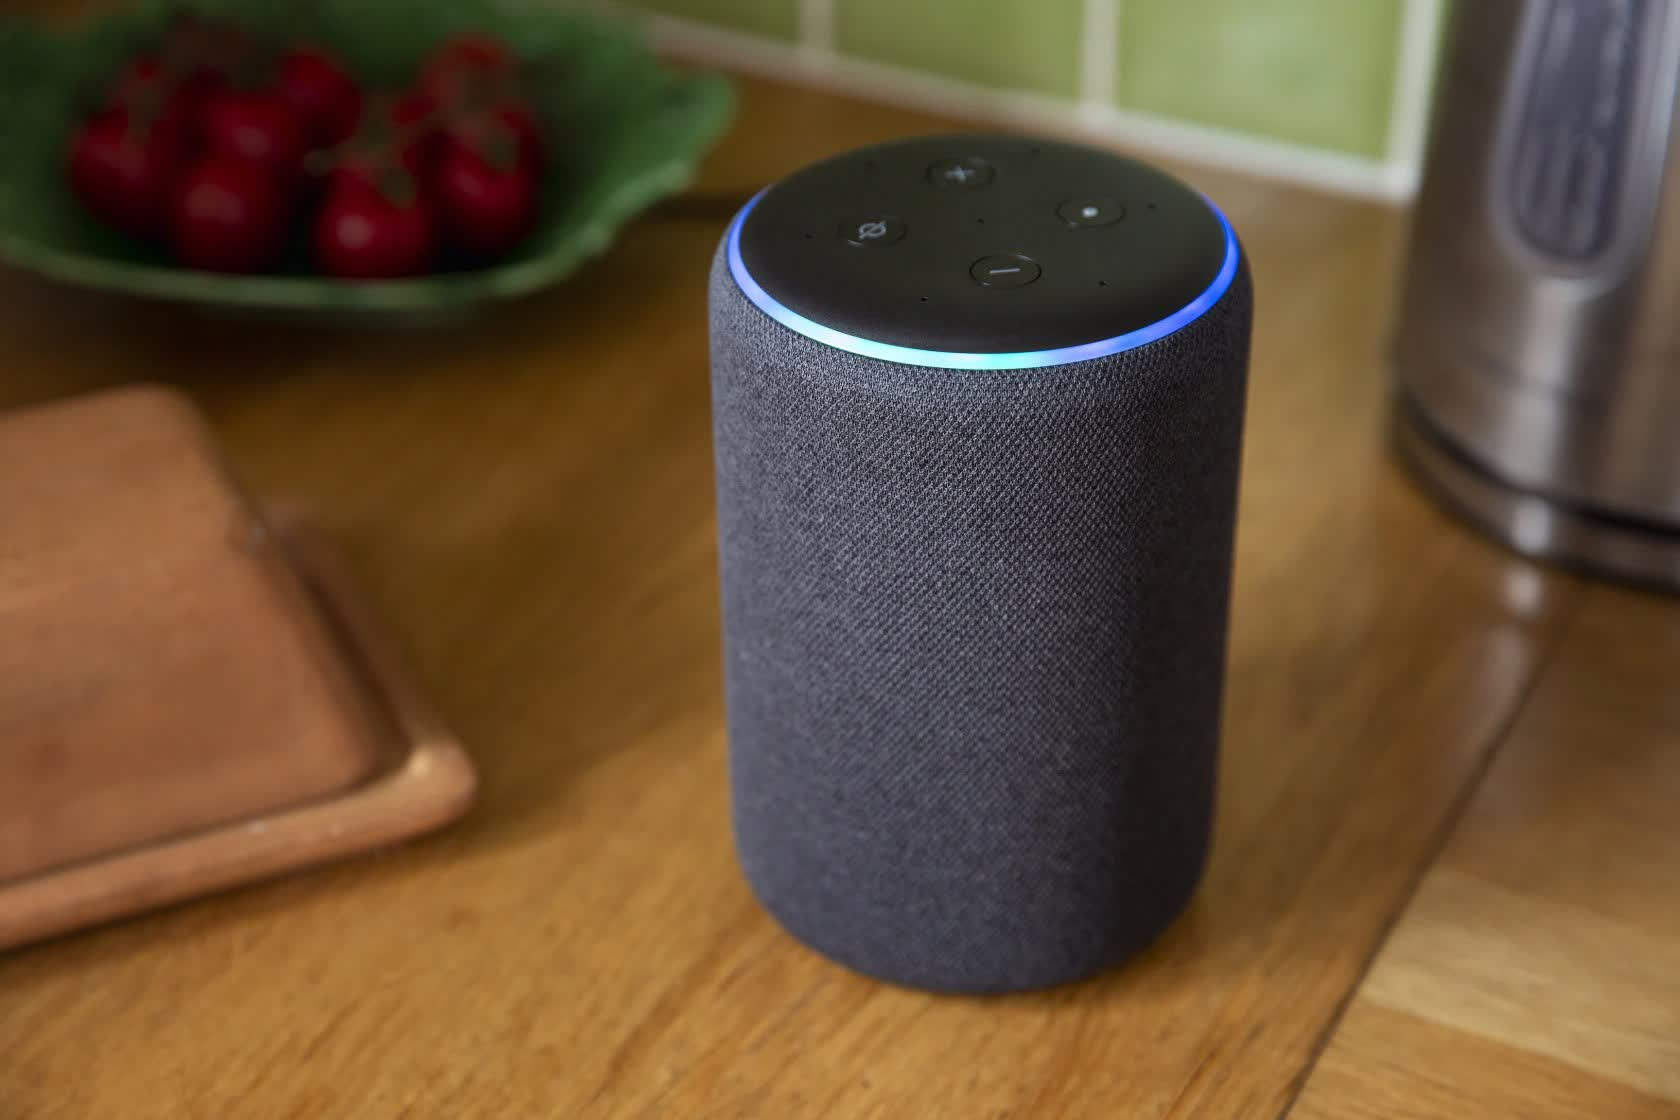 Smart devices could use AI to tell where your voice is coming from